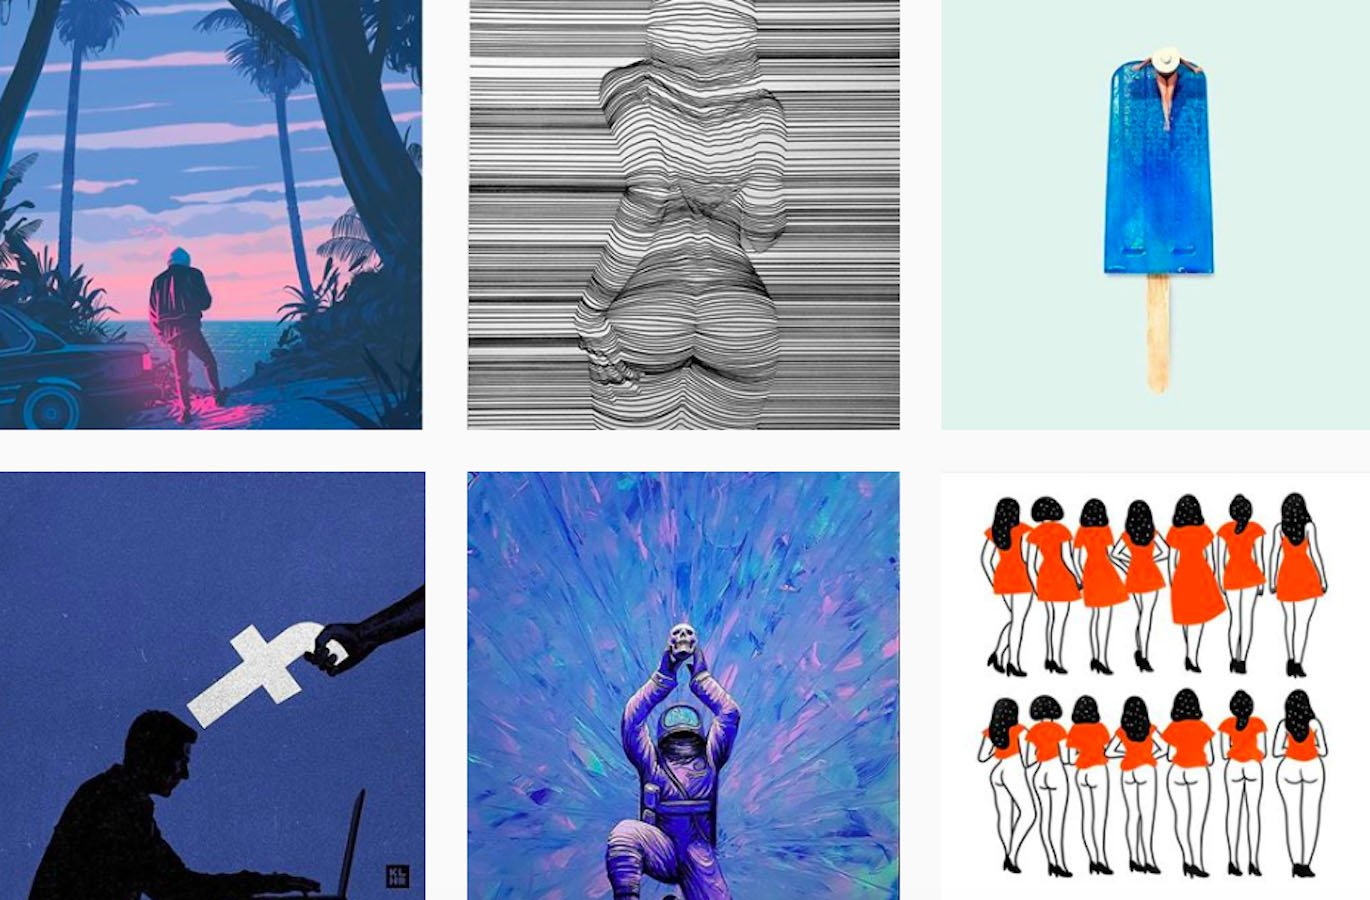 Web Design Inspiration: 110+ Accounts On Instagram and 10+ Best UX & Web Design Books in 2020 - graphicgang